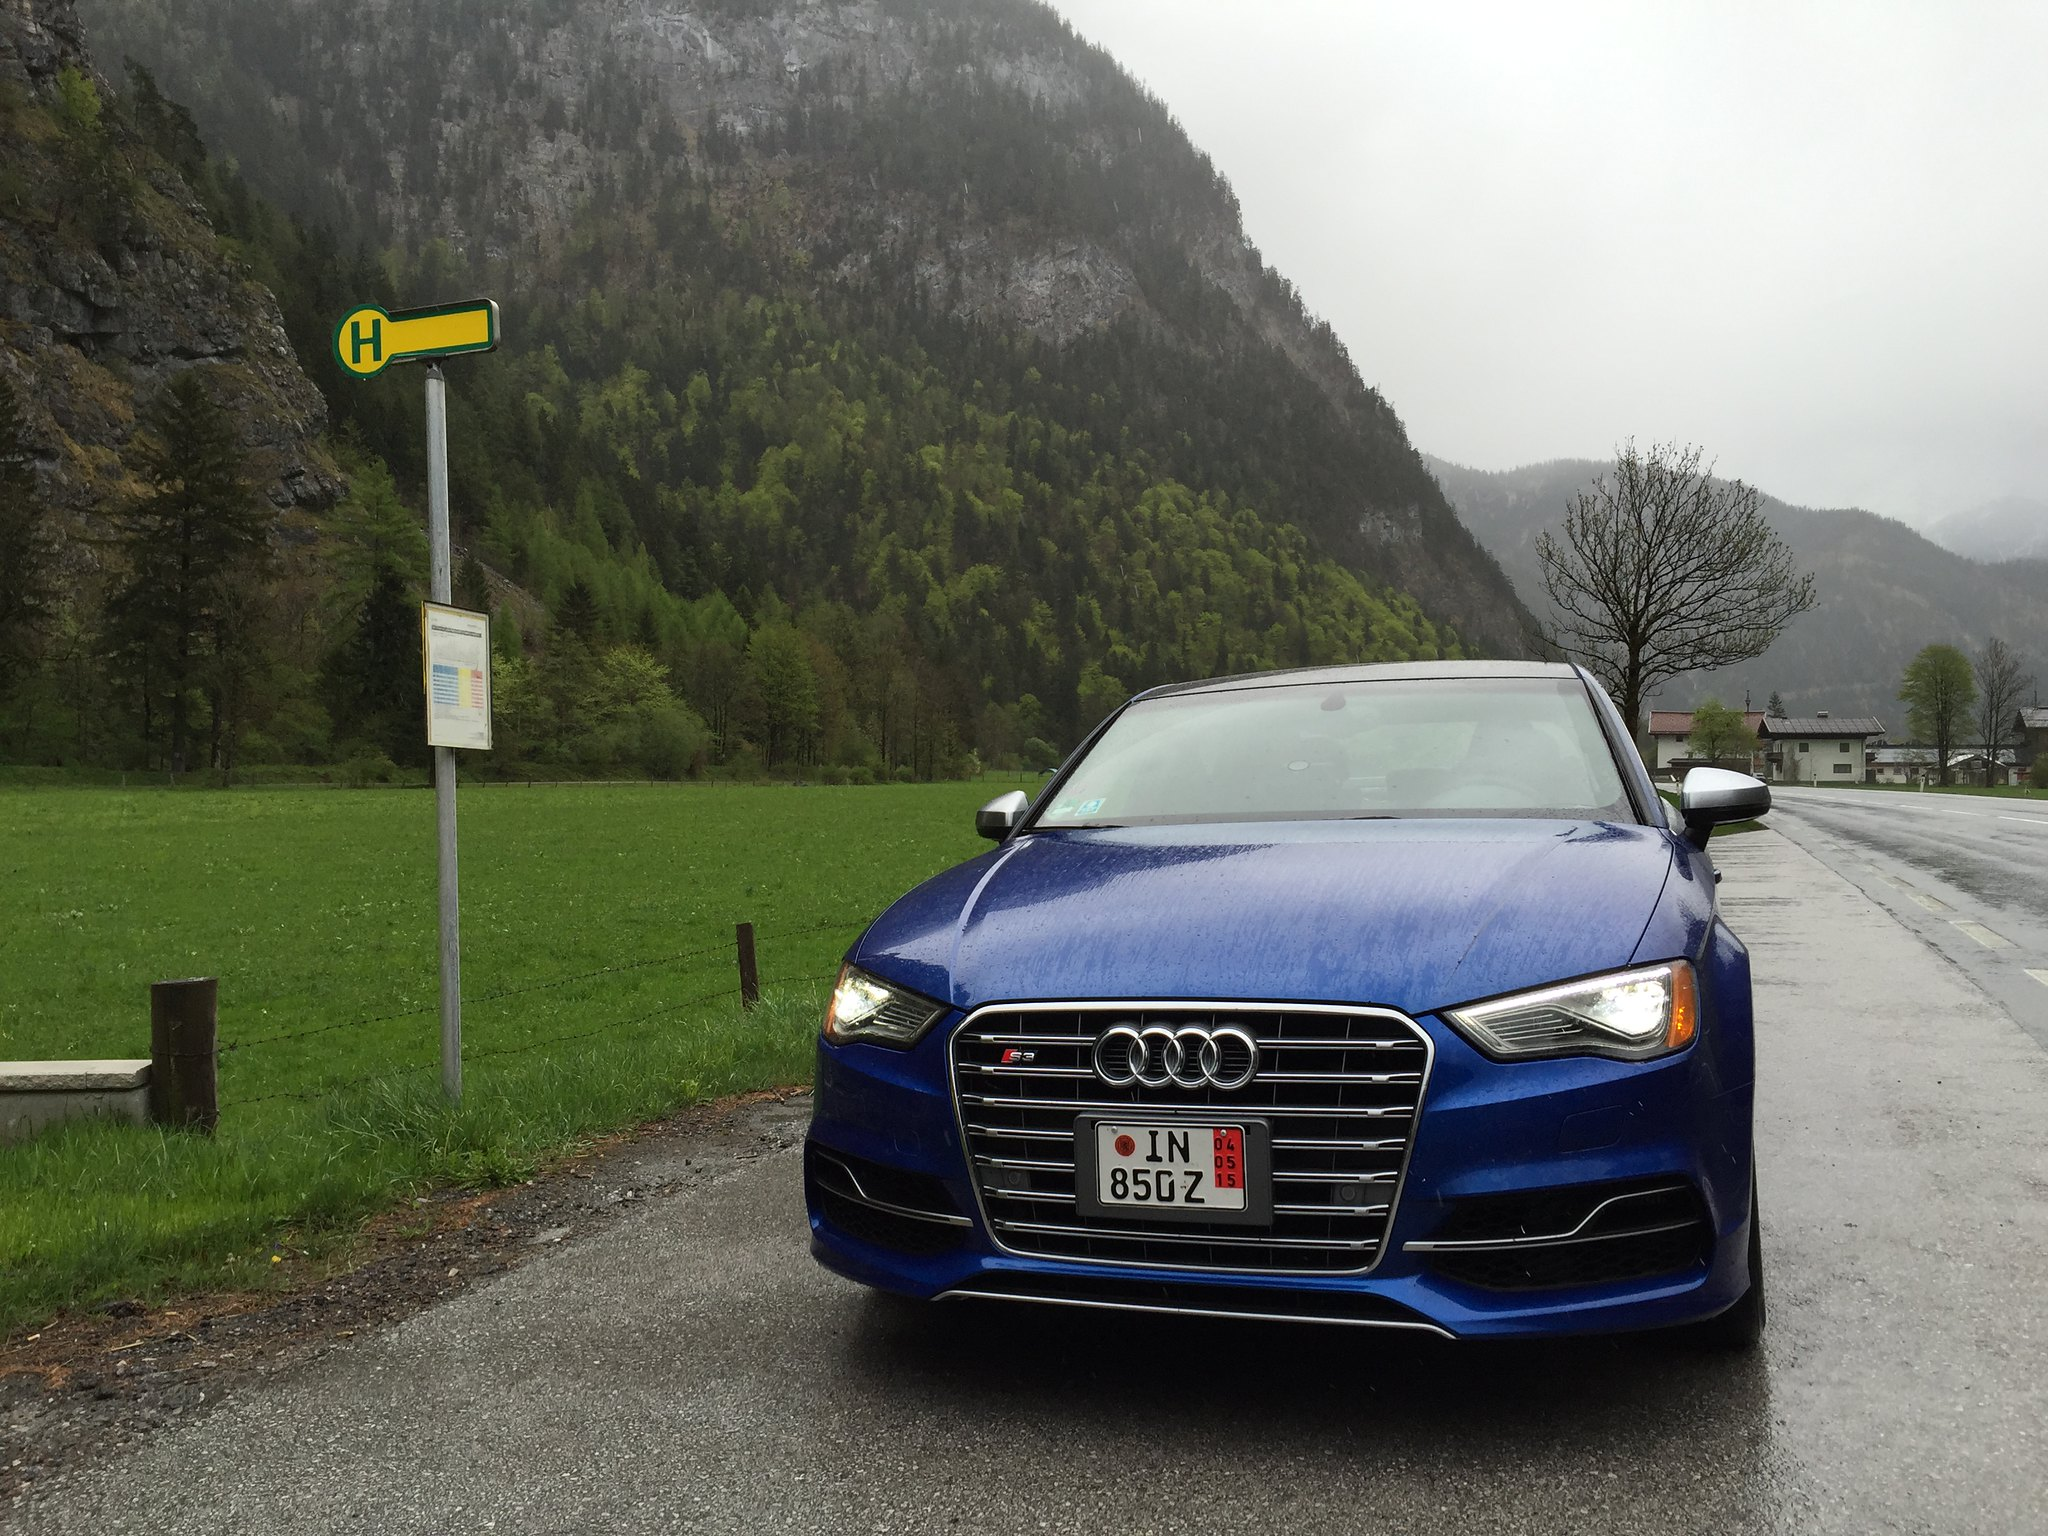 Audi Overseas Delivery Audi Factory Delivery Scxhjdorg - Audi european delivery